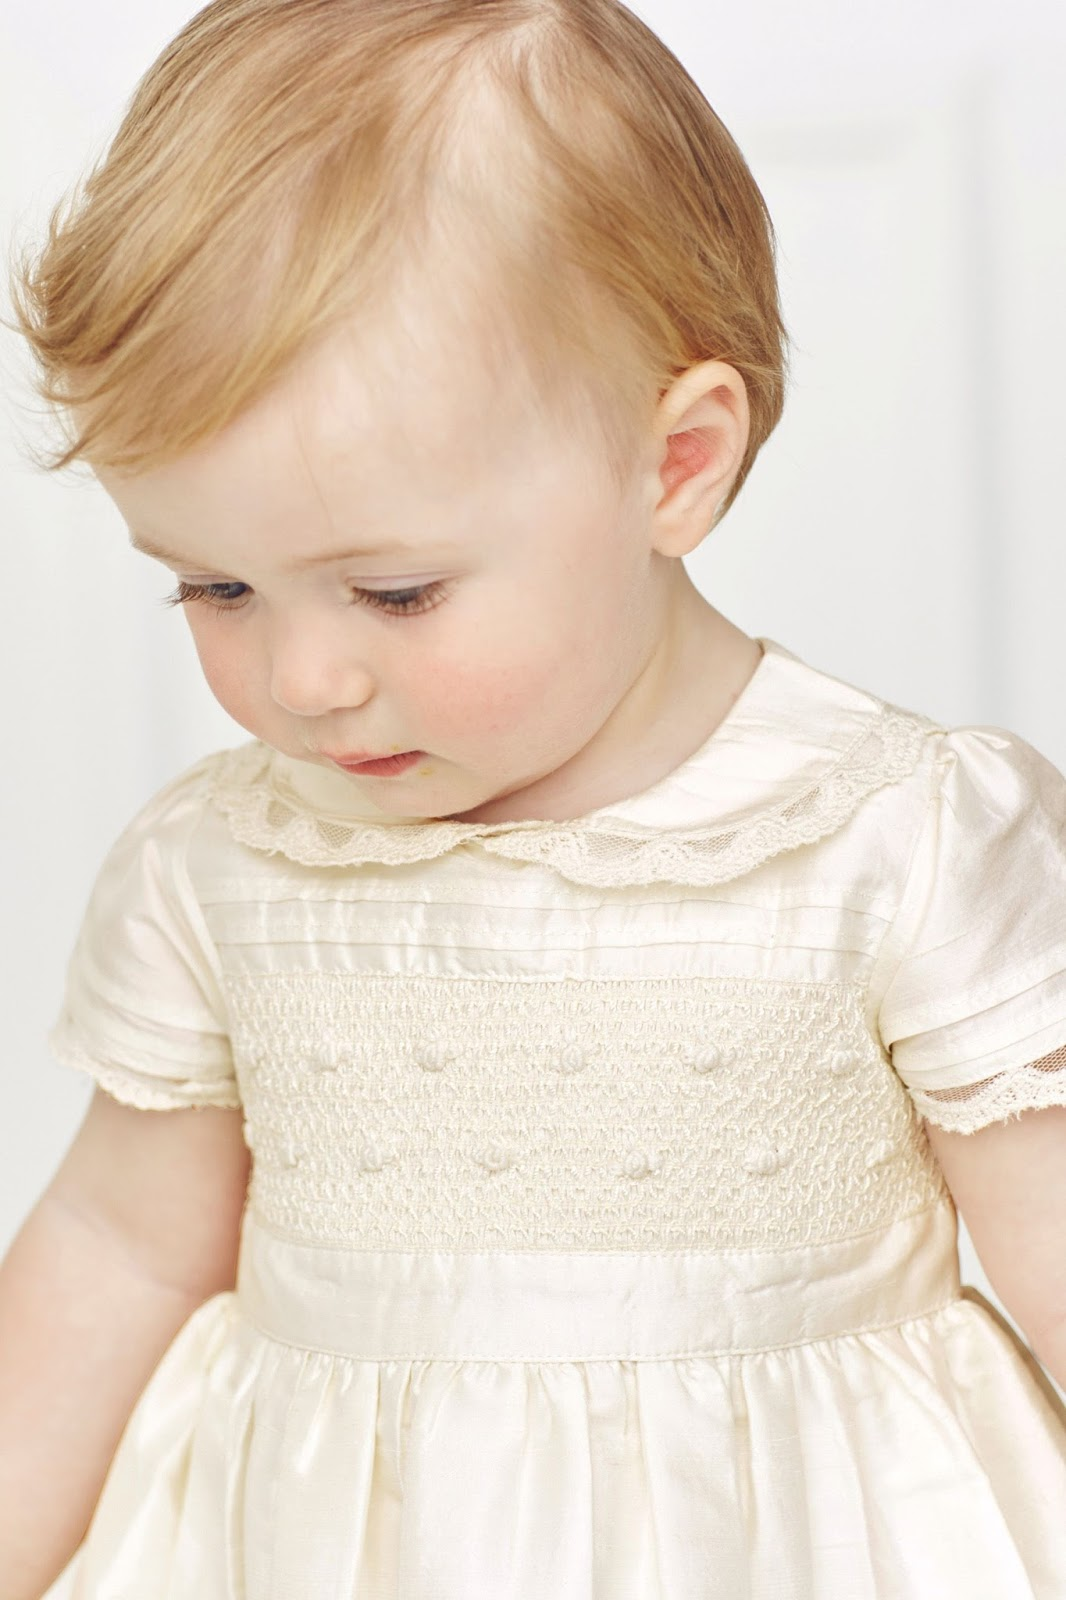 Christening looks and gift ideas that would get the Royal seal of approval